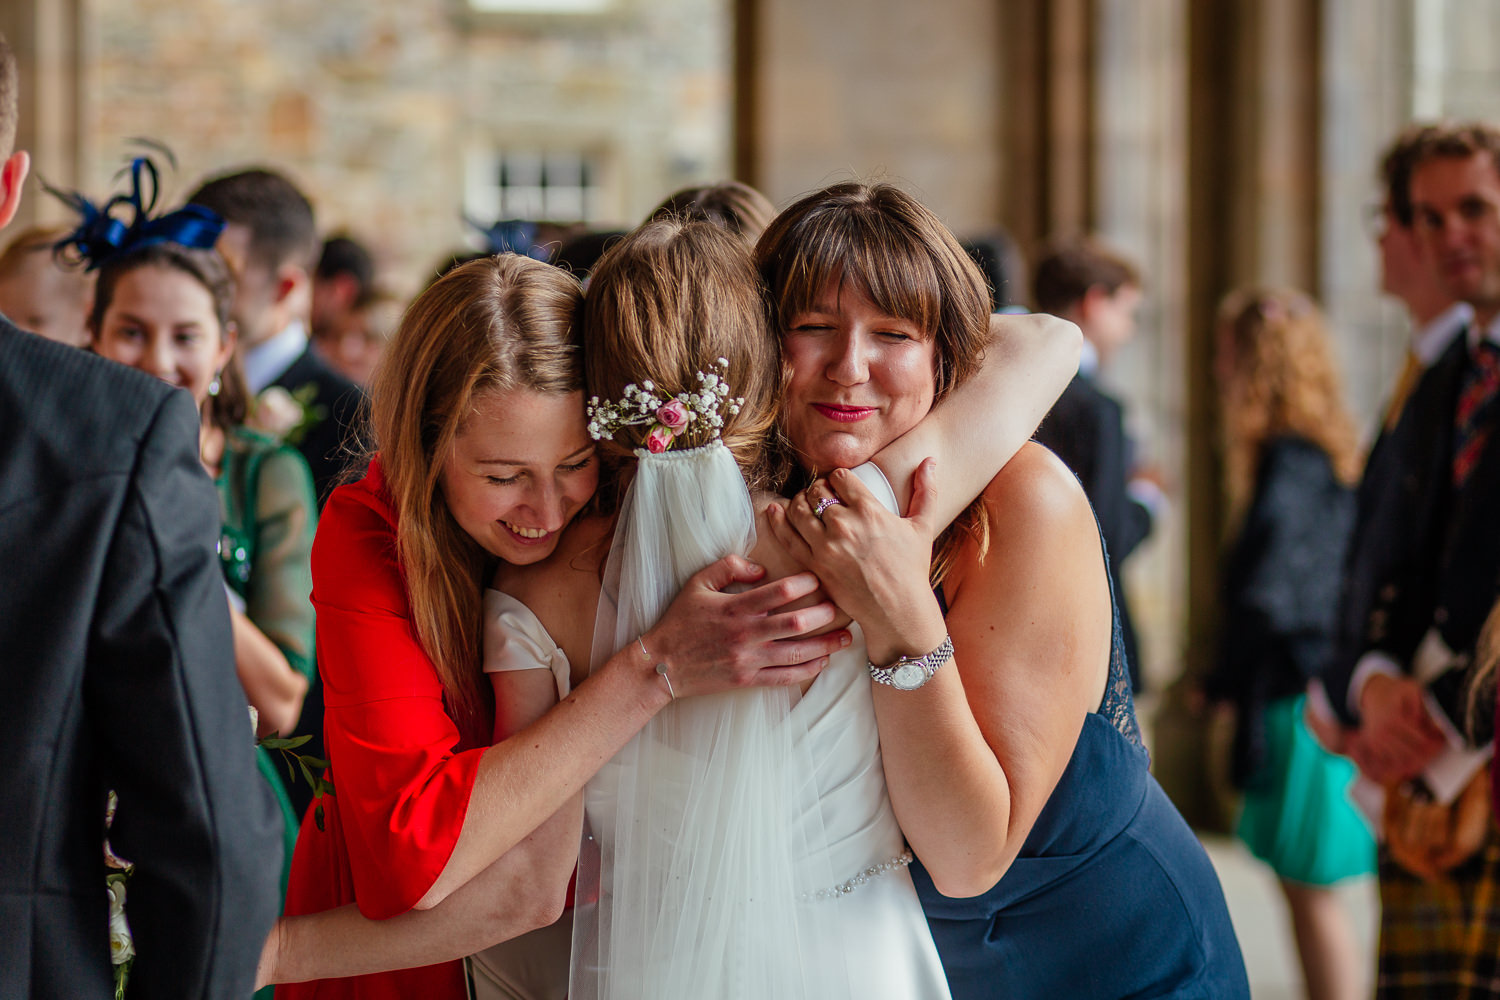 St Andrews Wedding Photos St Salvators Chapel Wedding Ceremony Candids Friends Hugging